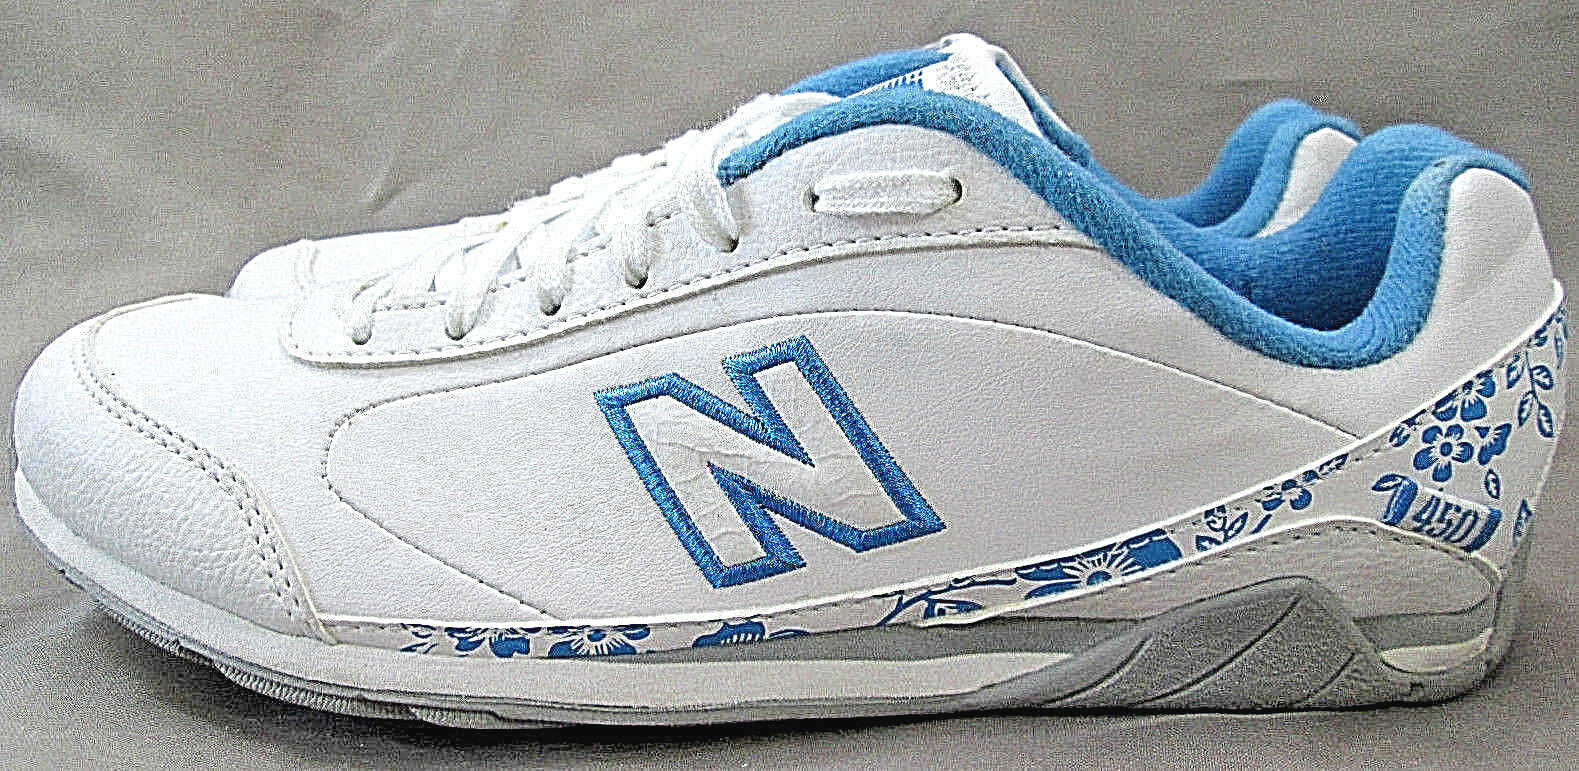 NEW BALANCE 450 Leather Walking Running shoes White bluee Floral Womens 7.5